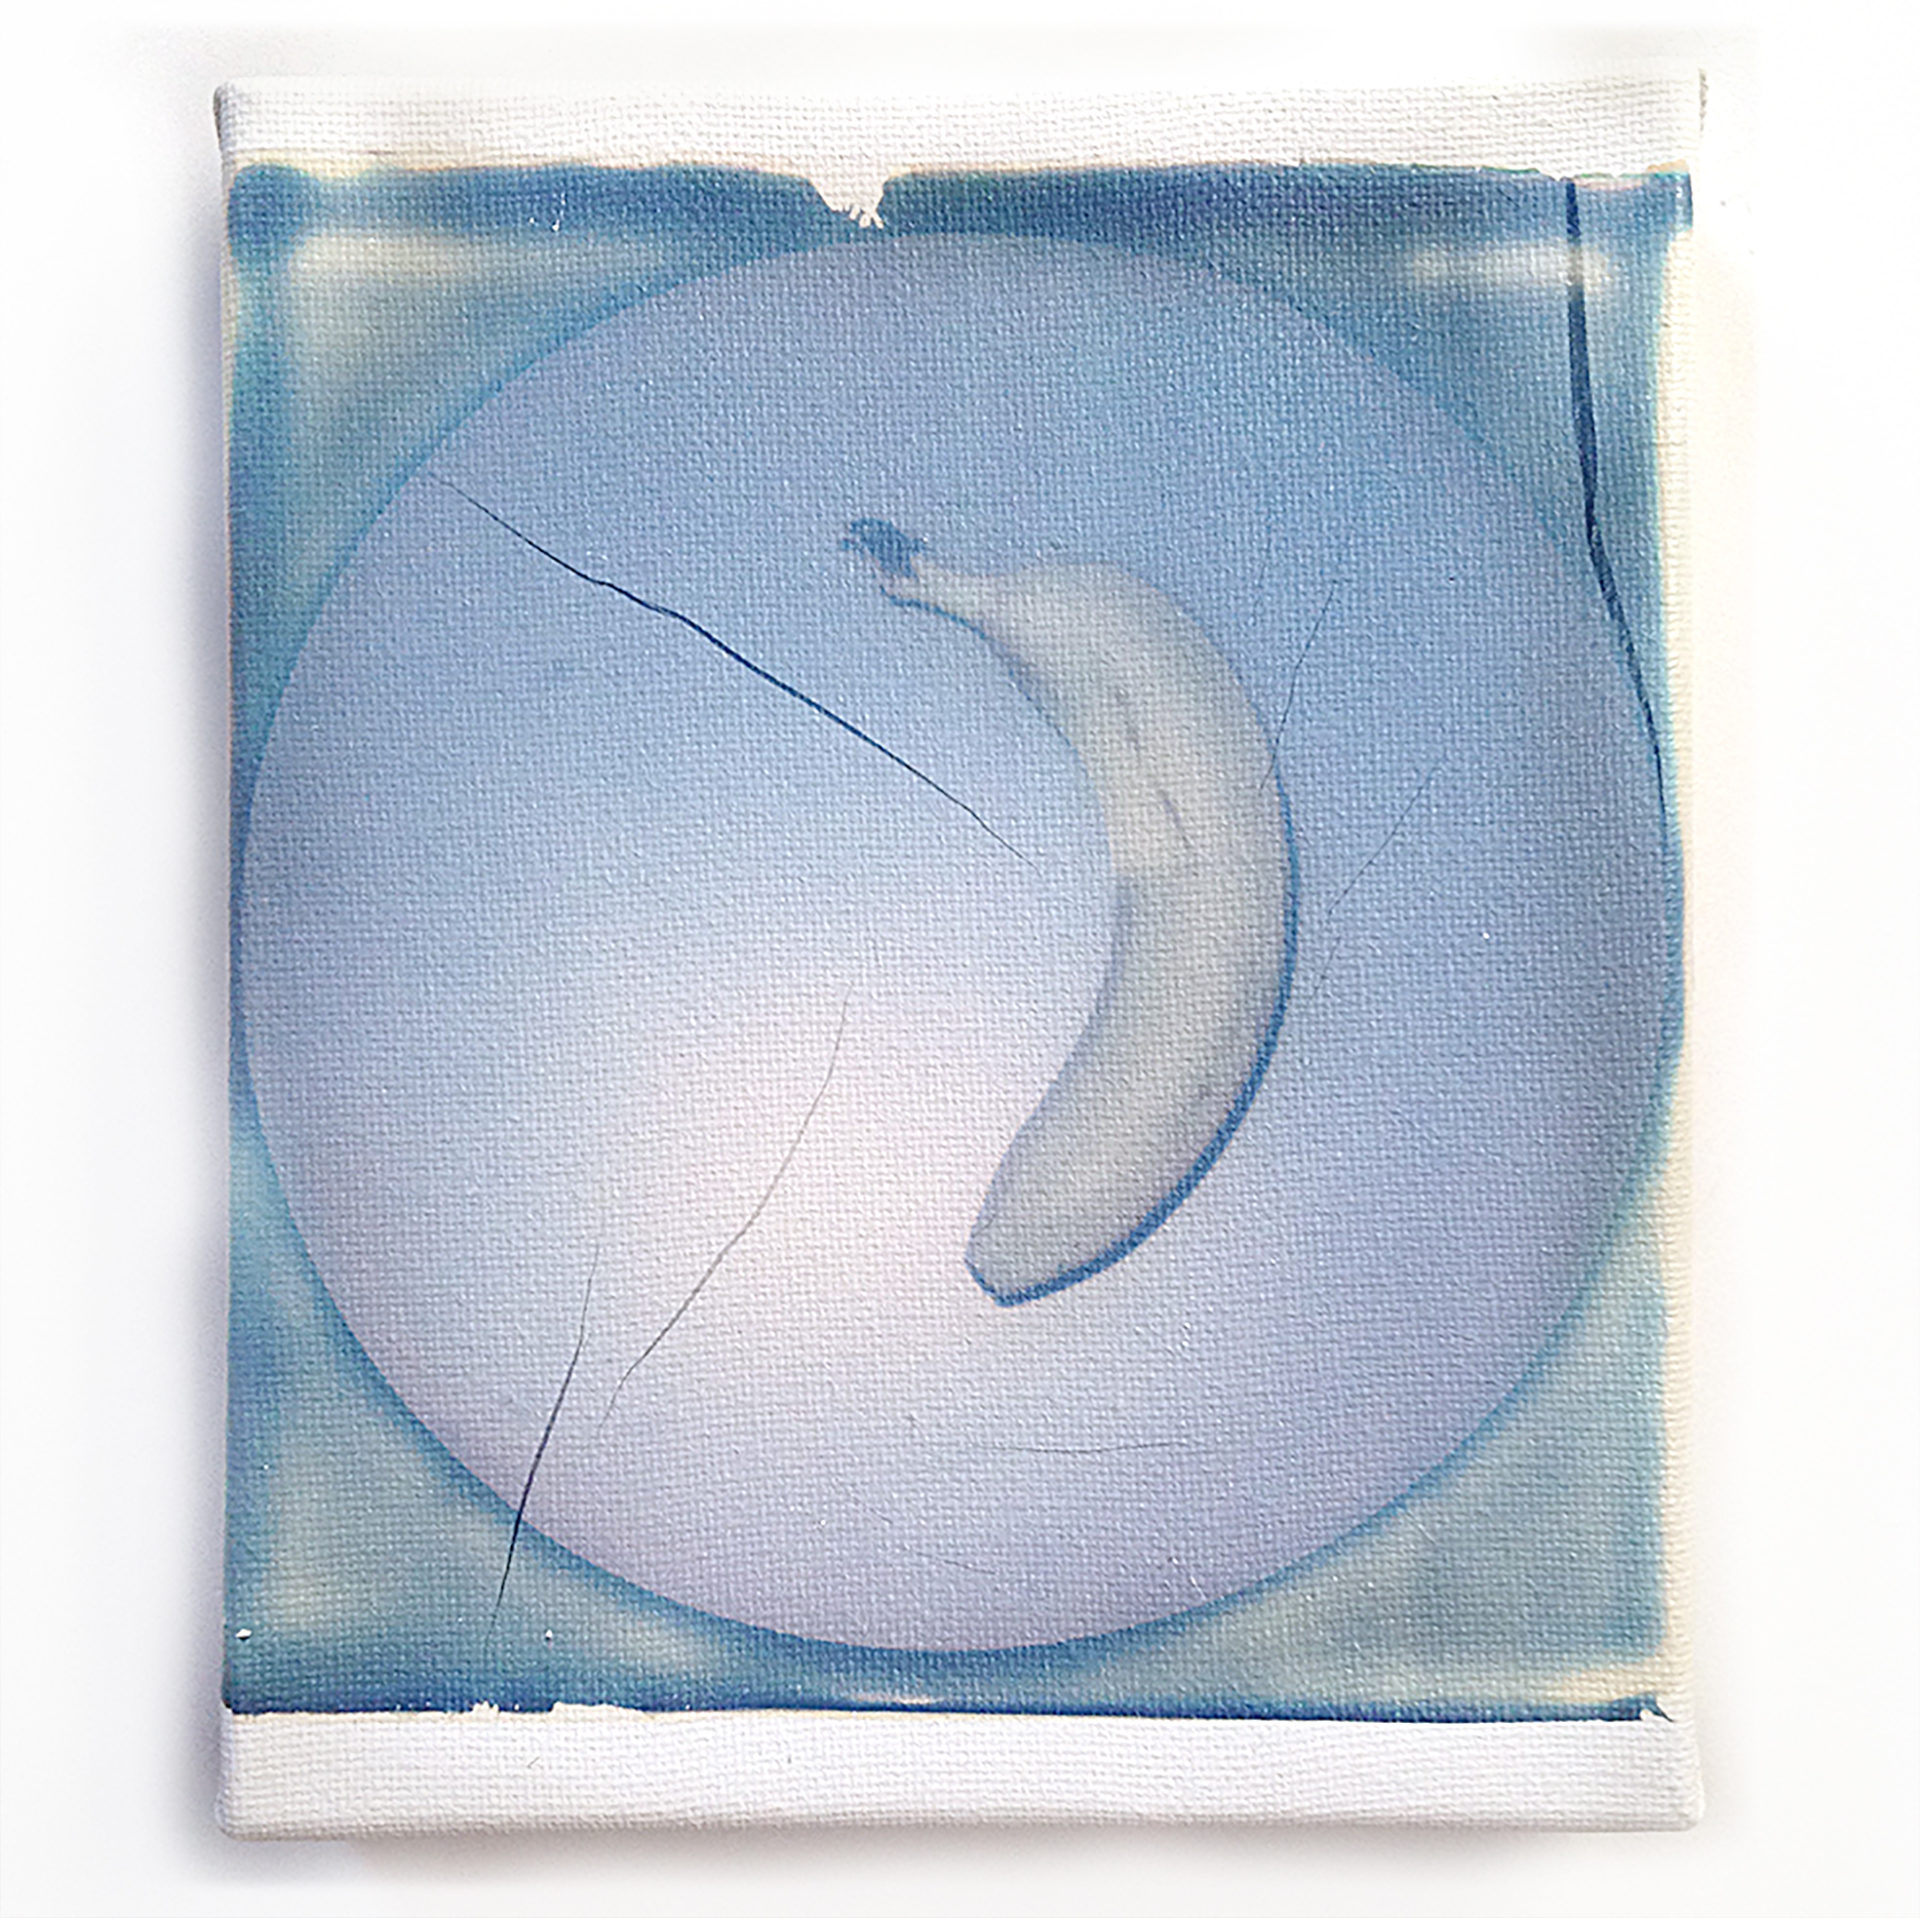 Banana peel, Polaroid SX70 émulsion lift sur toile, 15 x 12 cm, 2016, Collection privée Benetton